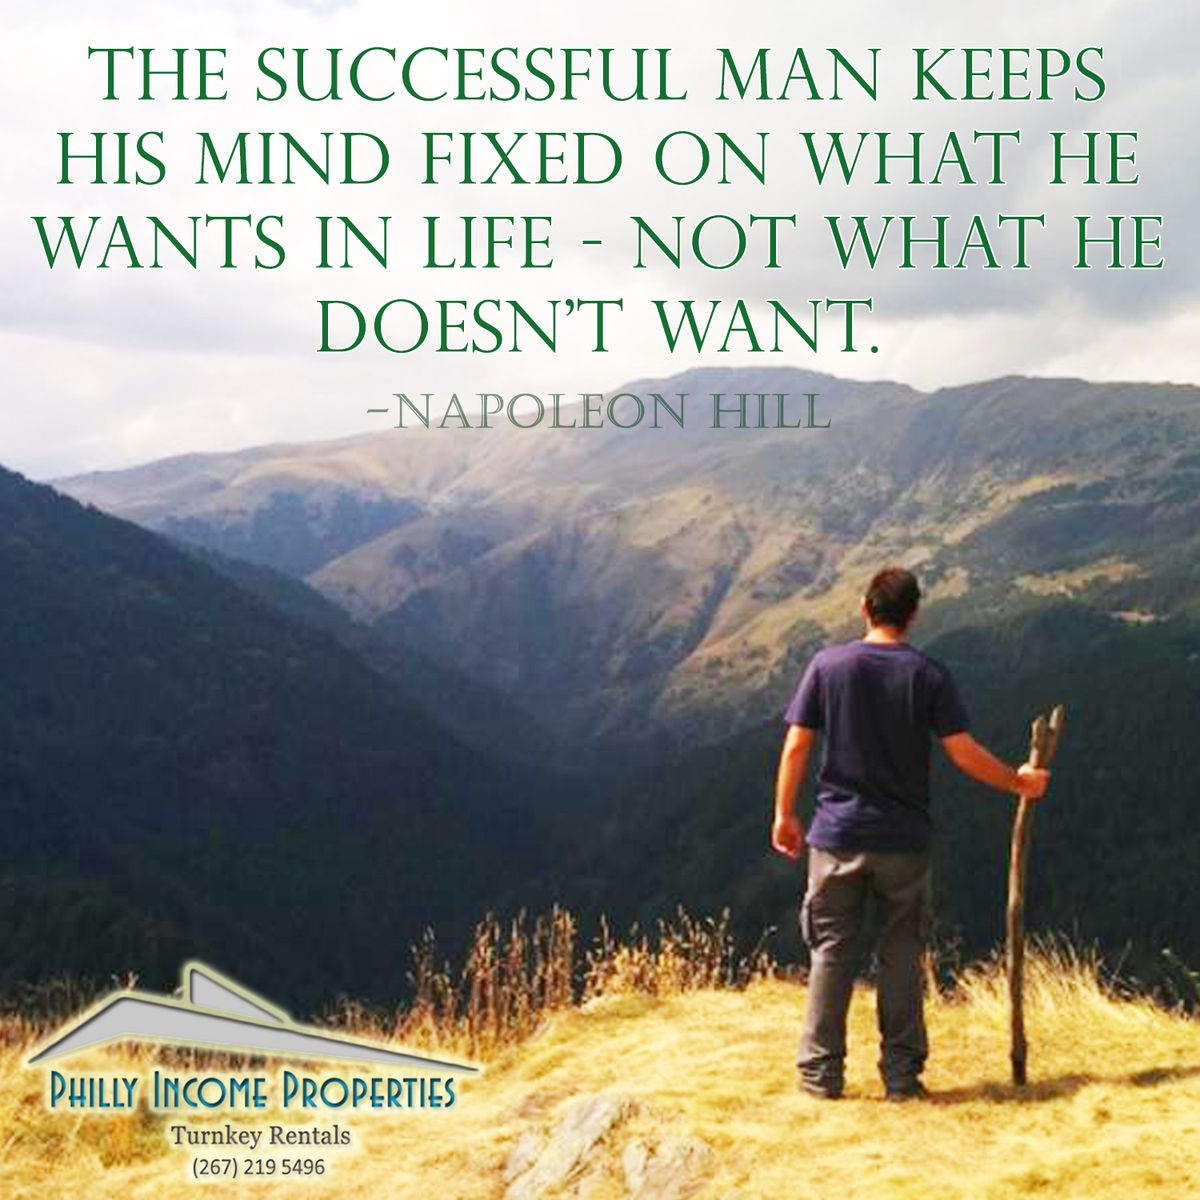 Inspirational Quotes About Failure: 1000+ Napoleon Hill Quotes On Pinterest